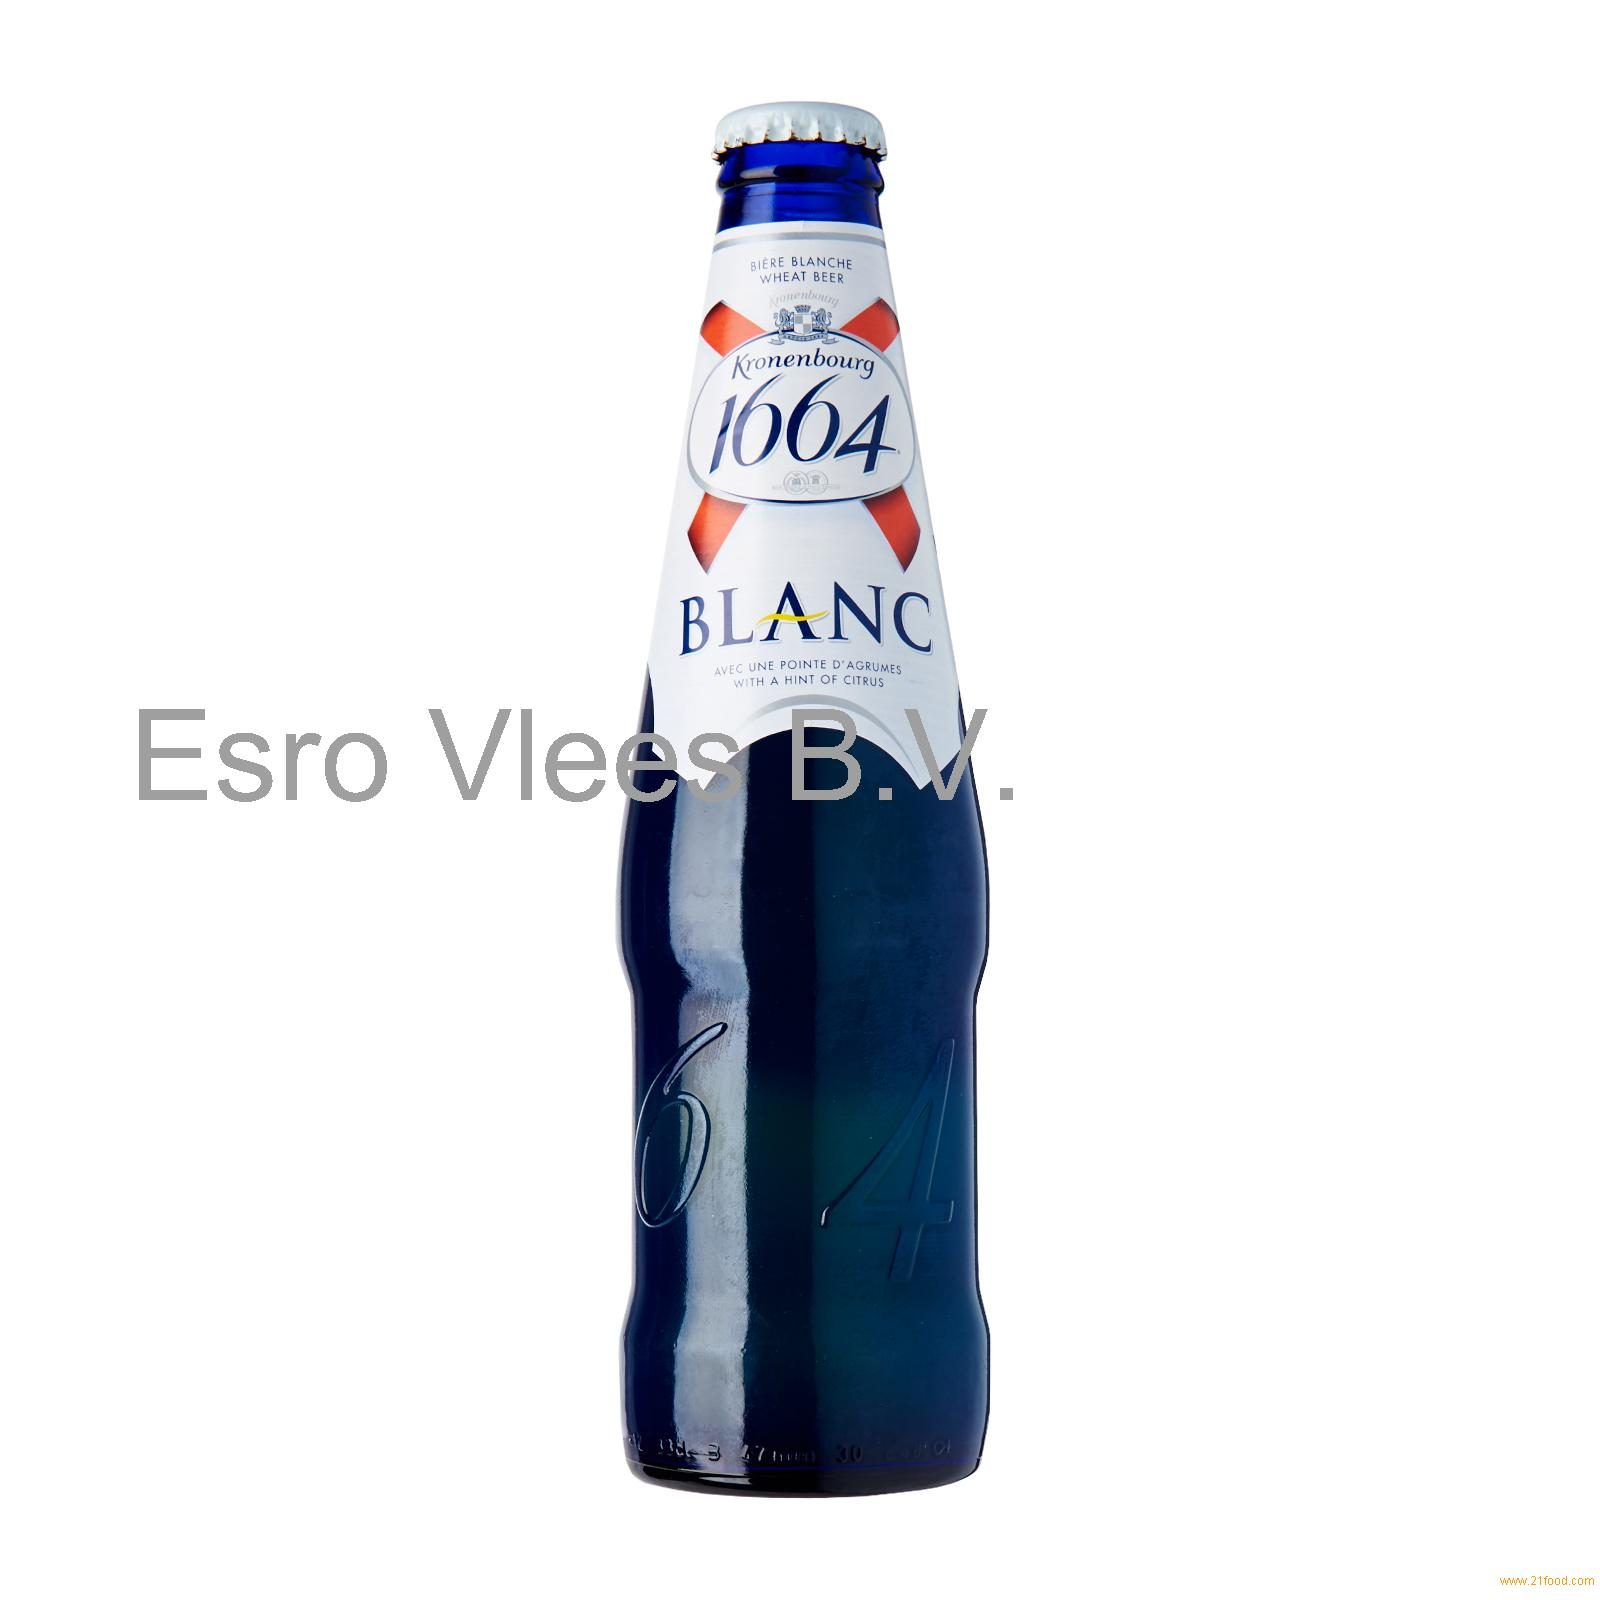 KRONENBOURG 1664 BLANC BEER 330ml BLUE BOTTLES